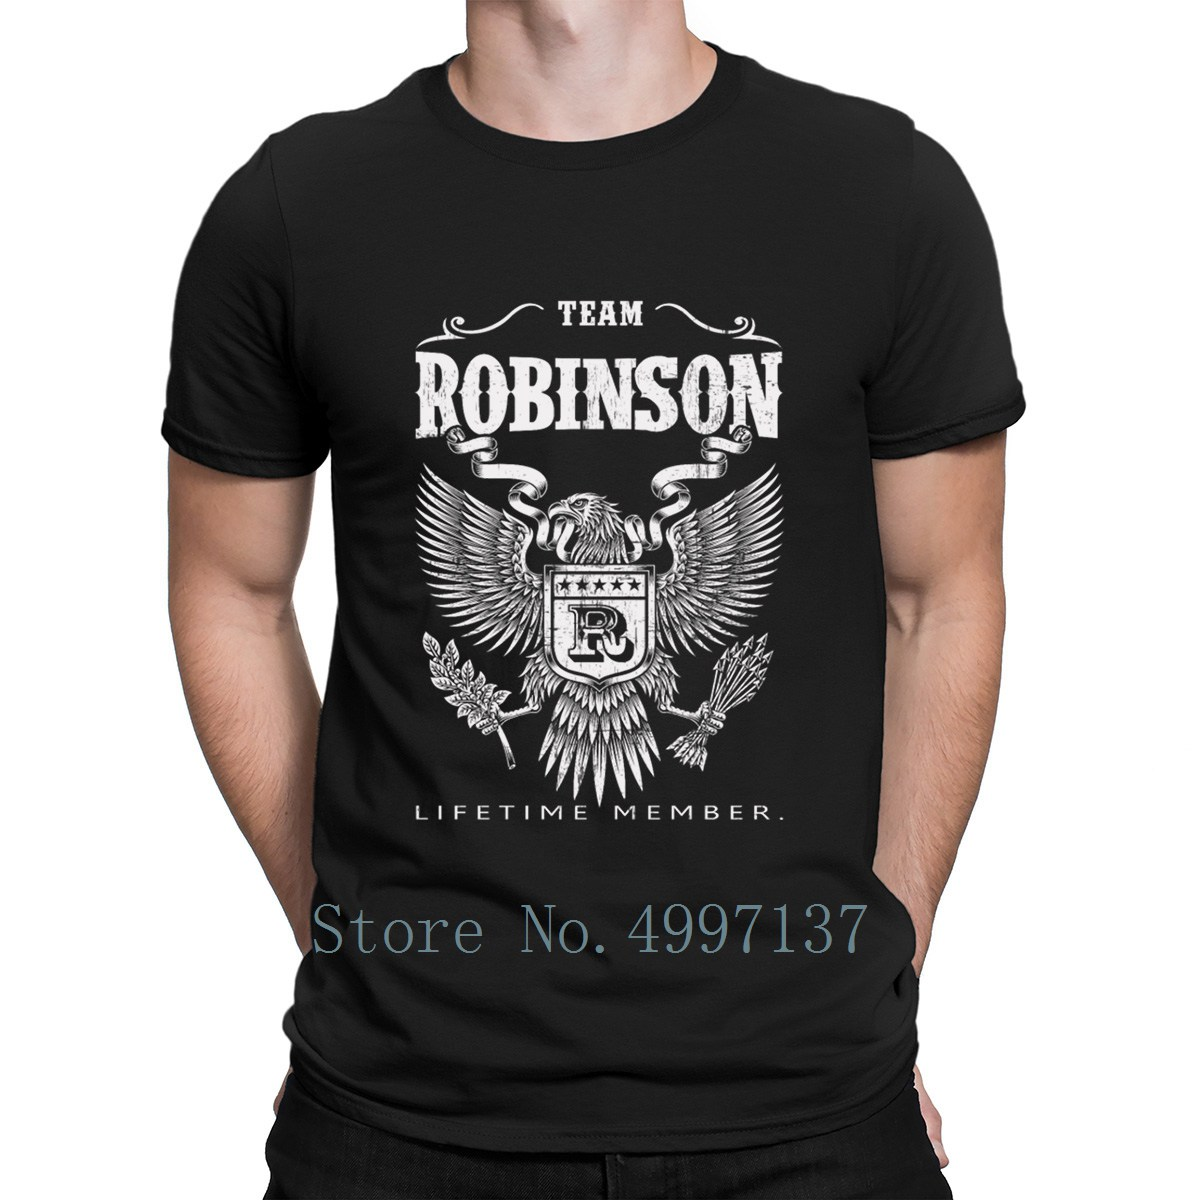 Robinson Team Robinson Ltm T Shirt Cotton Cute Leisure Funny Casual Summer Plus Size 3xl Vintage Printed Shirt image